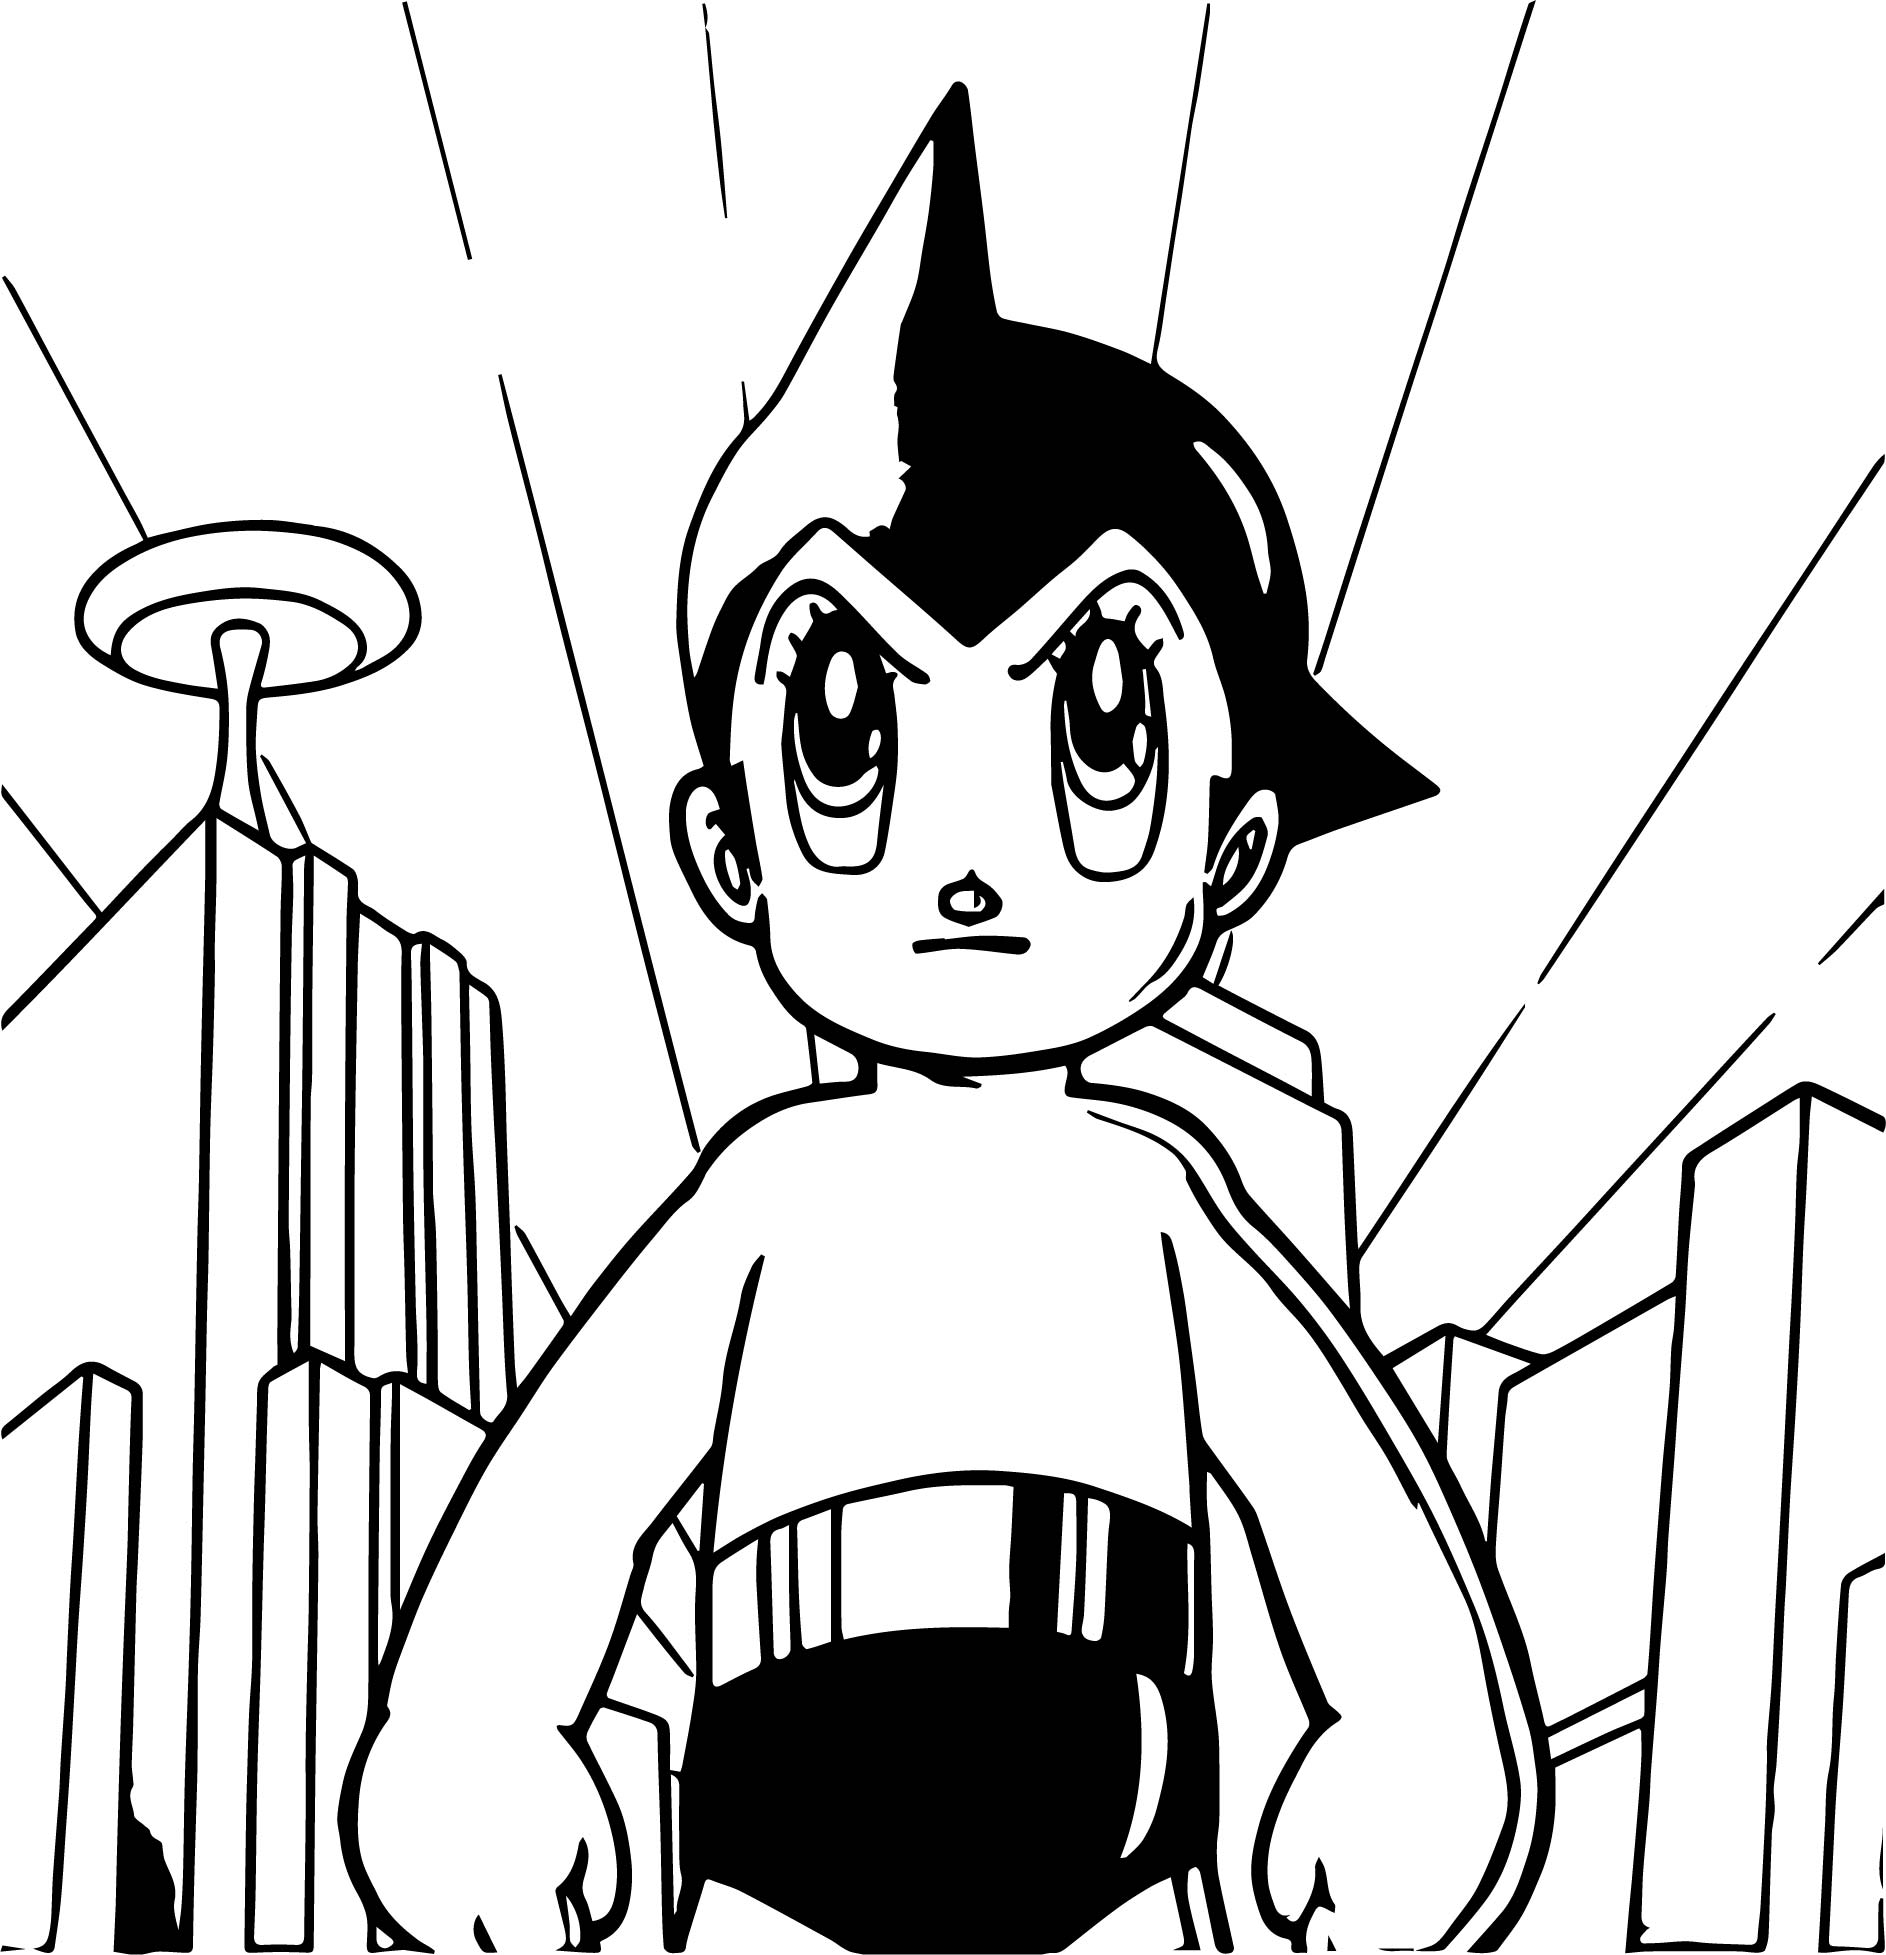 Astro boy angry in city coloring page for Astro boy coloring pages free